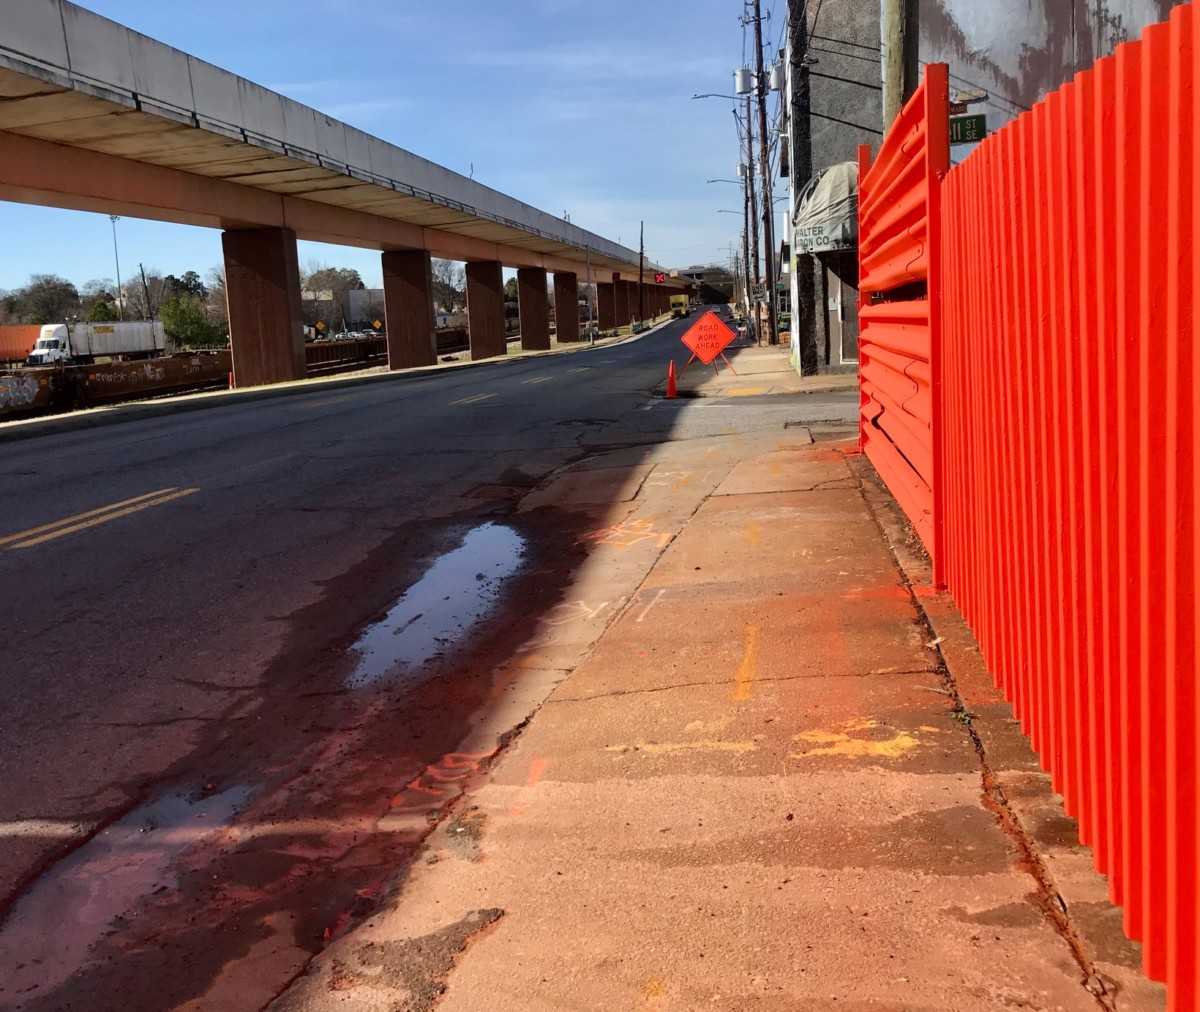 """DeKalb Avenue is slated for a """"complete street"""" upgrade, though the idea has run into objections. Credit: Kelly Jordan"""